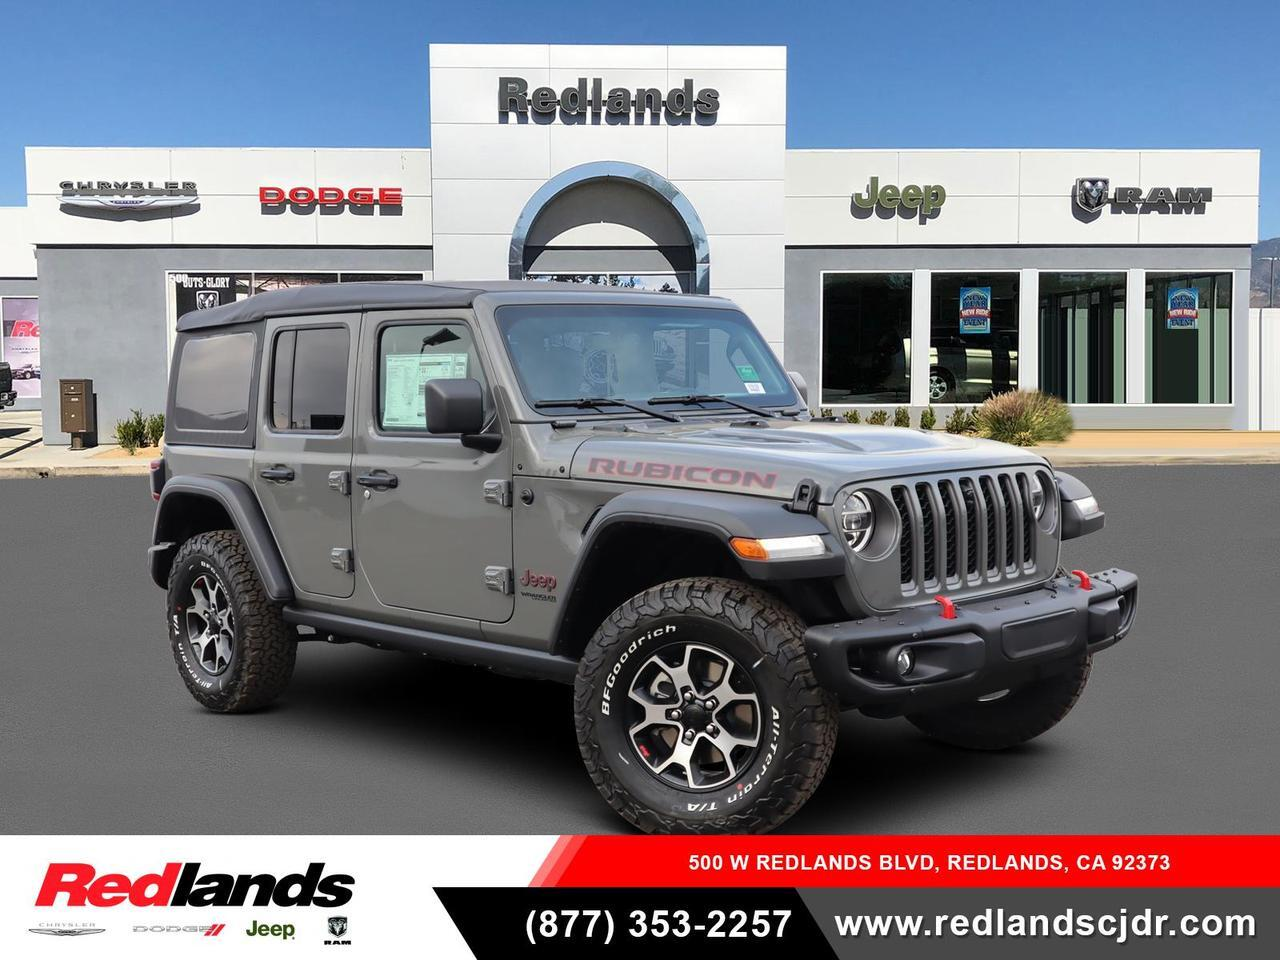 New 2021 Jeep Wrangler Unlimited Rubicon 4x4 Sting Gray Clear Coat Exterior Paint For Sale In Redlands Ca 1c4hjxfn0mw569042